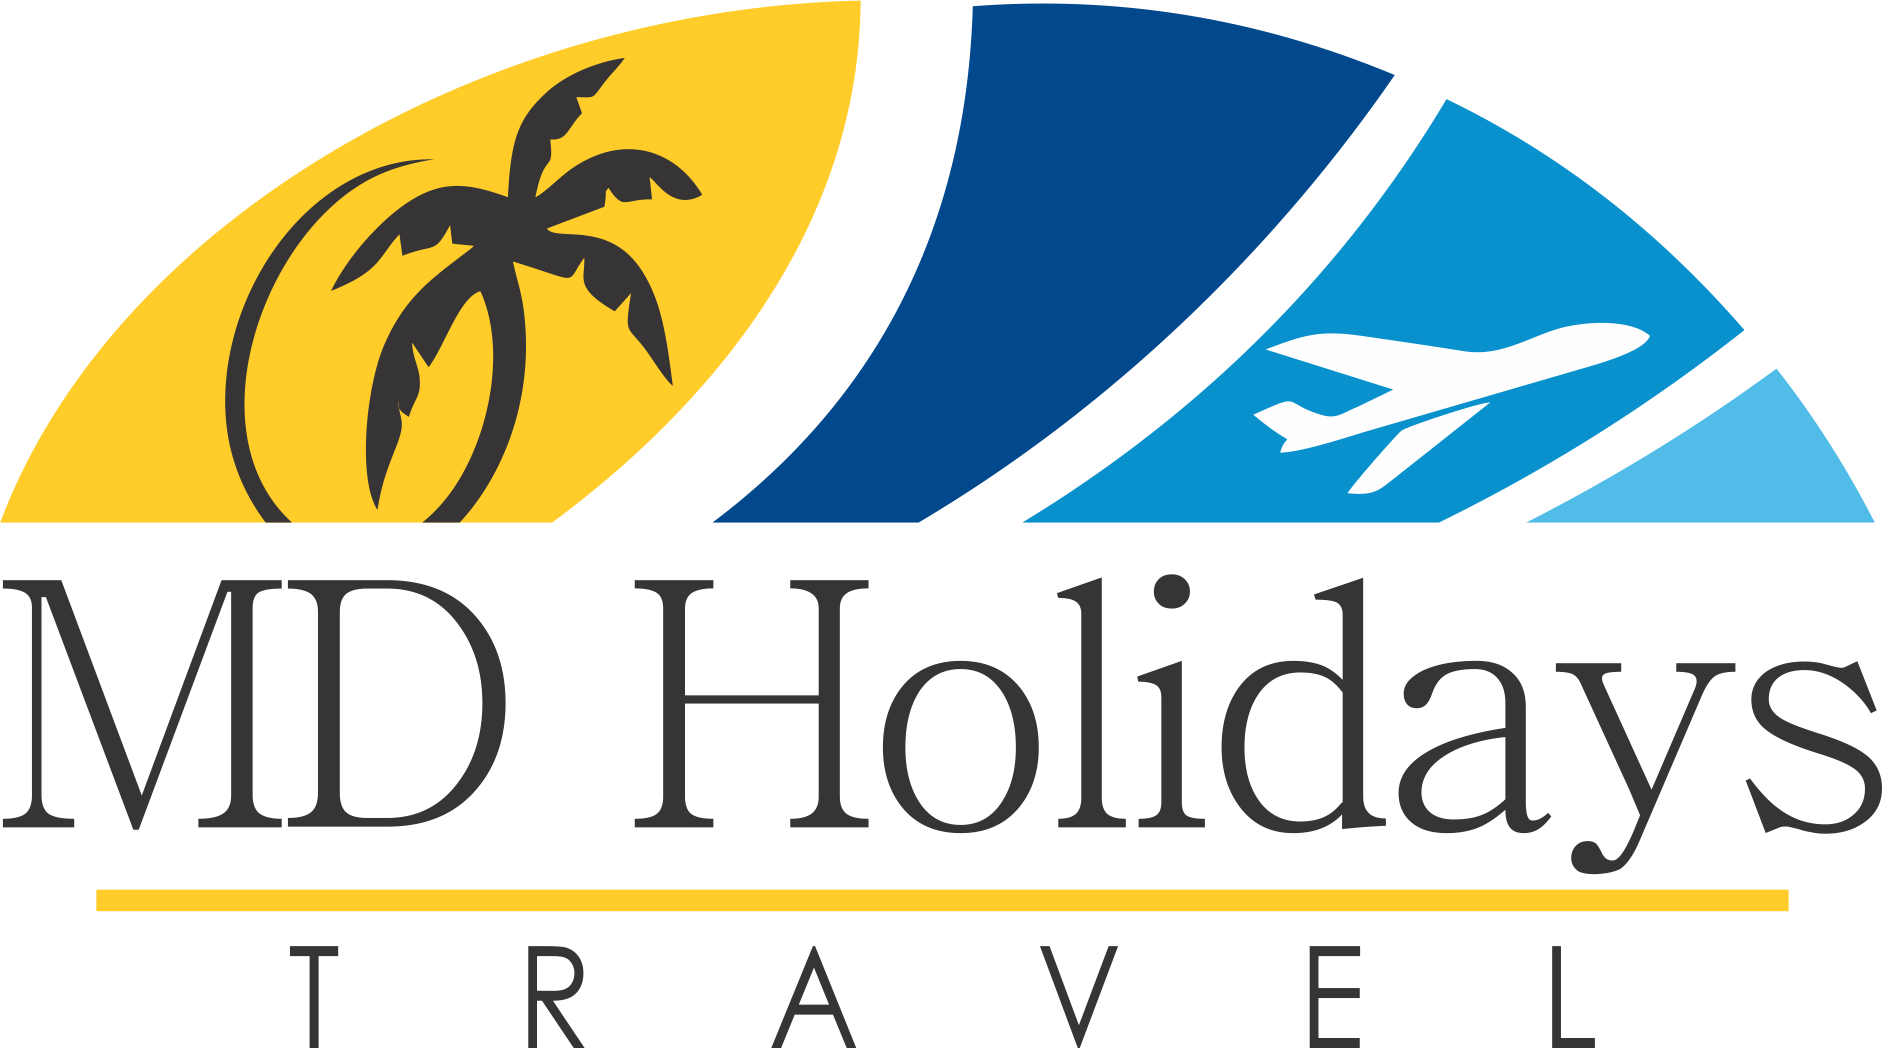 MD HOLIDAYS TRAVEL | Sofi House - MD HOLIDAYS TRAVEL